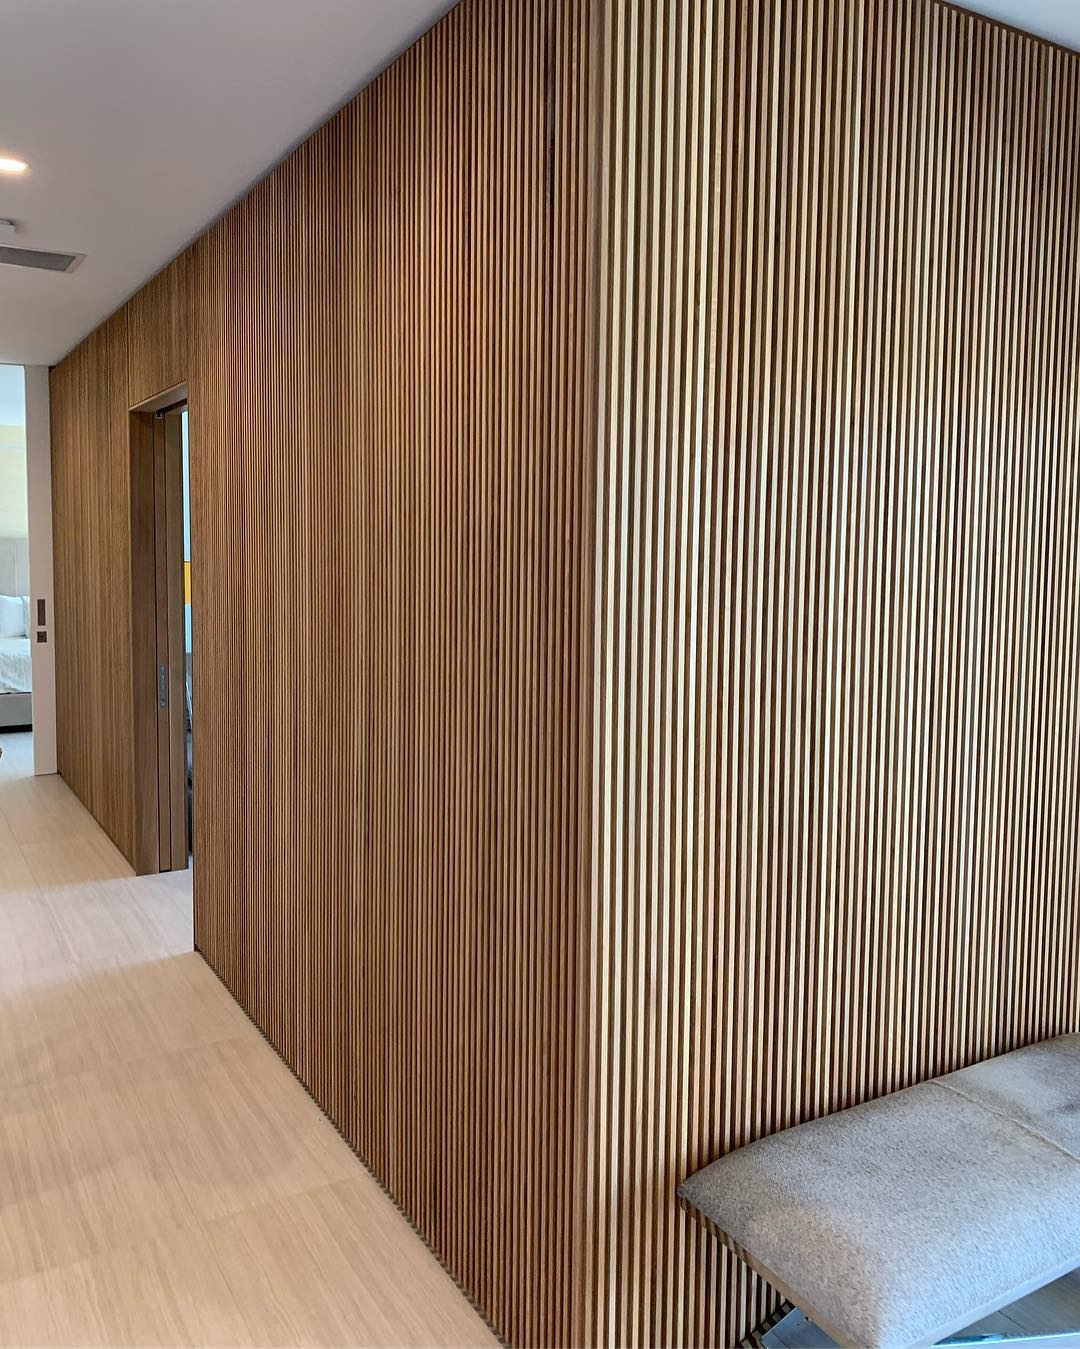 Simple yet complex white oak slat wall details. Designed by @dc_architecture Built by @foursquarebuilders and @flitchatx